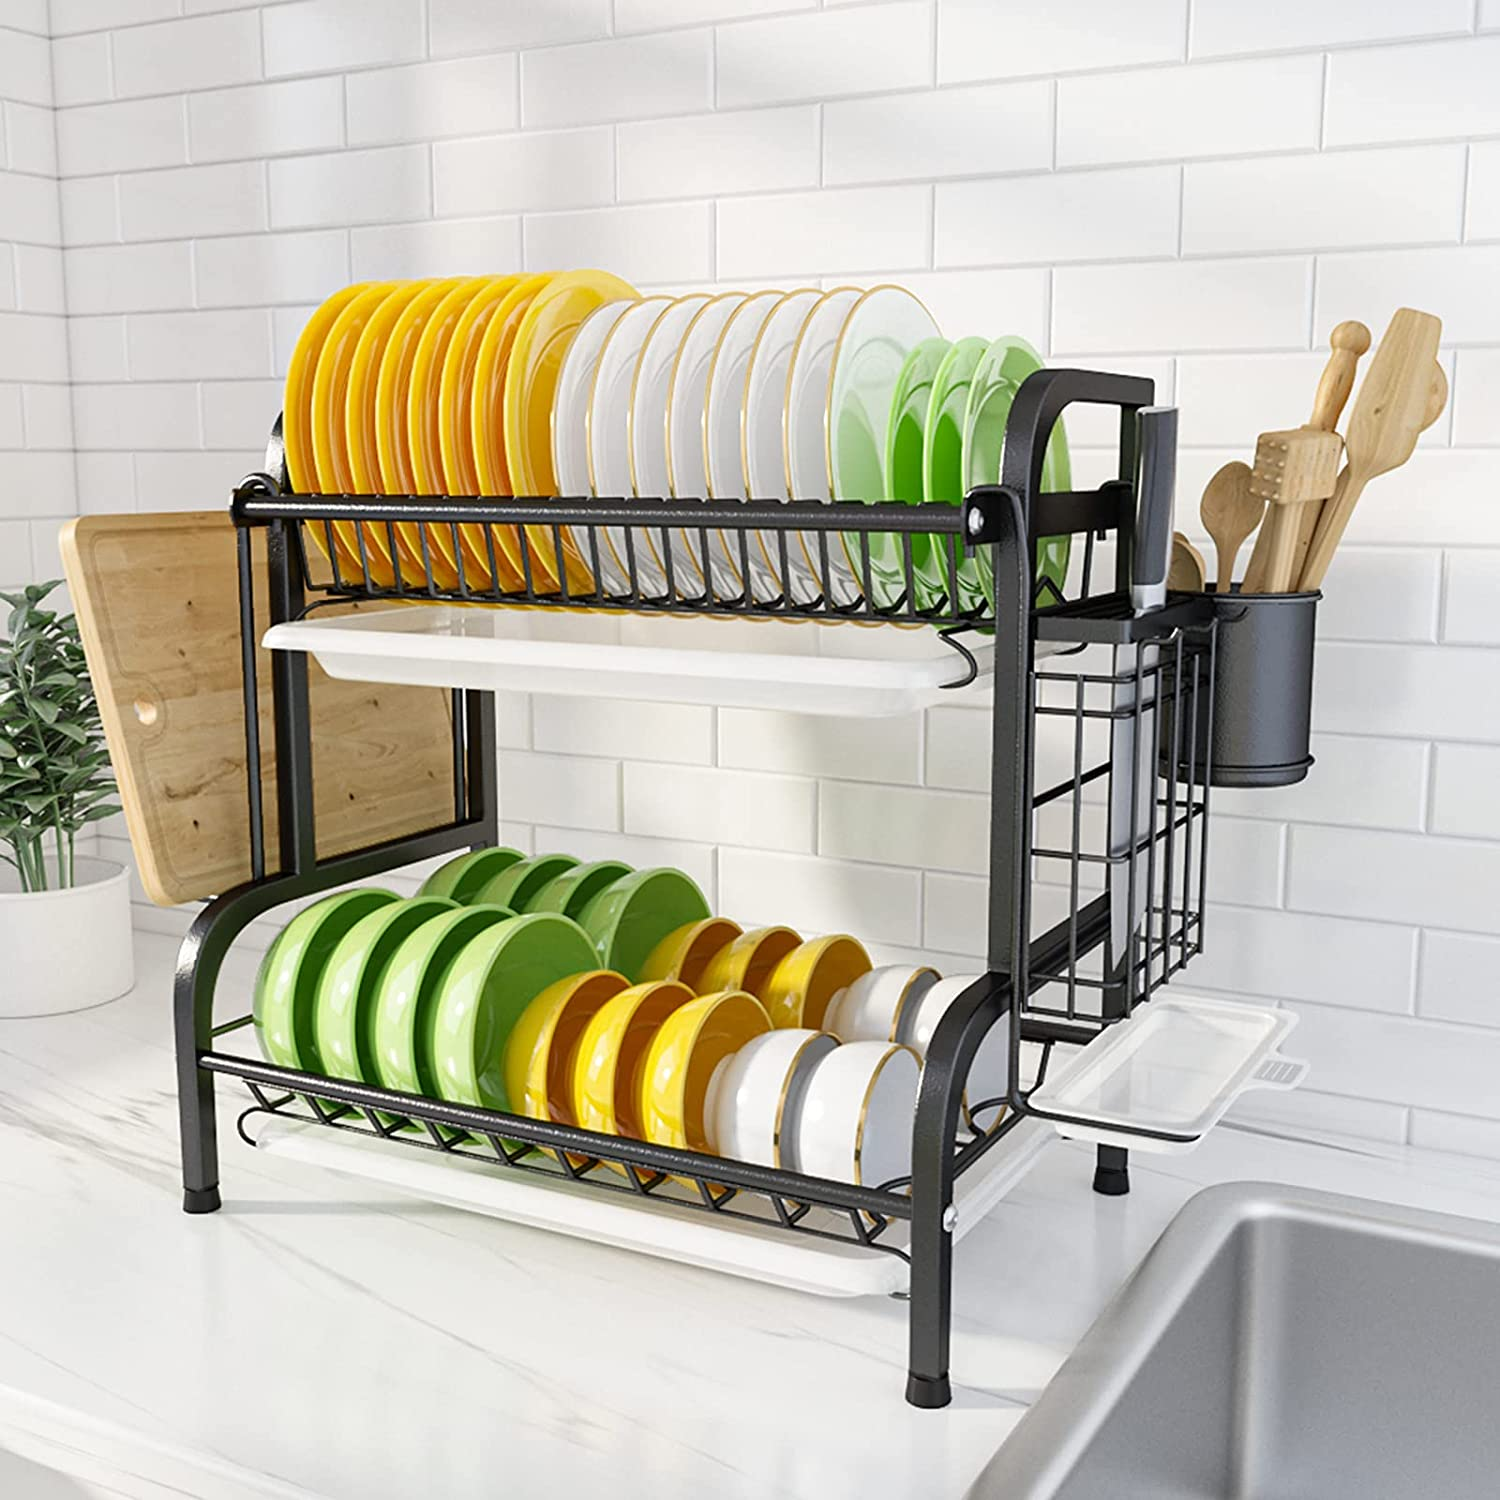 Buy Dish Drying Rack 2 Tier Stainless Steel Dish Drainer Rack For Kitchen Counter With Removable Drainboard And Cup Utensil Holder By Steelgear Sgdr02b Online In Vietnam B08vj8mc8s